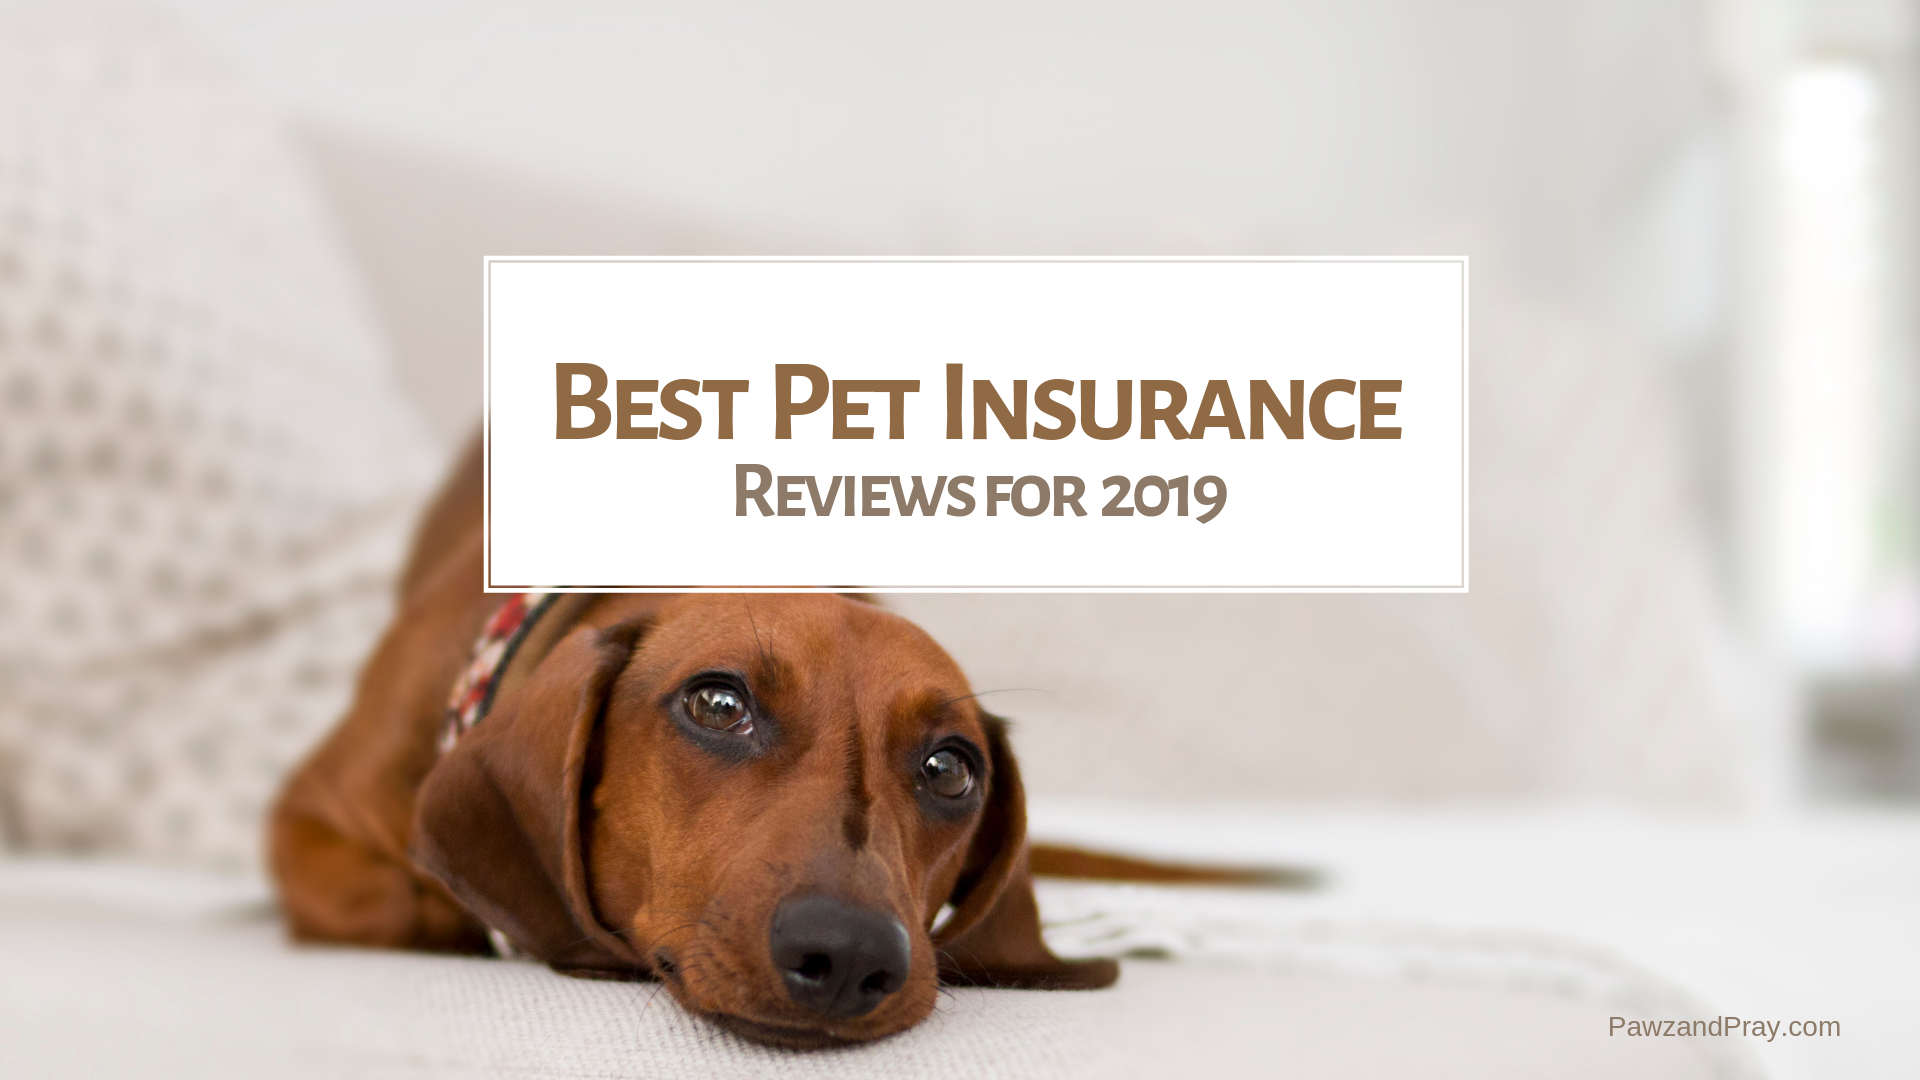 Best Pet Insurance Reviews 2019